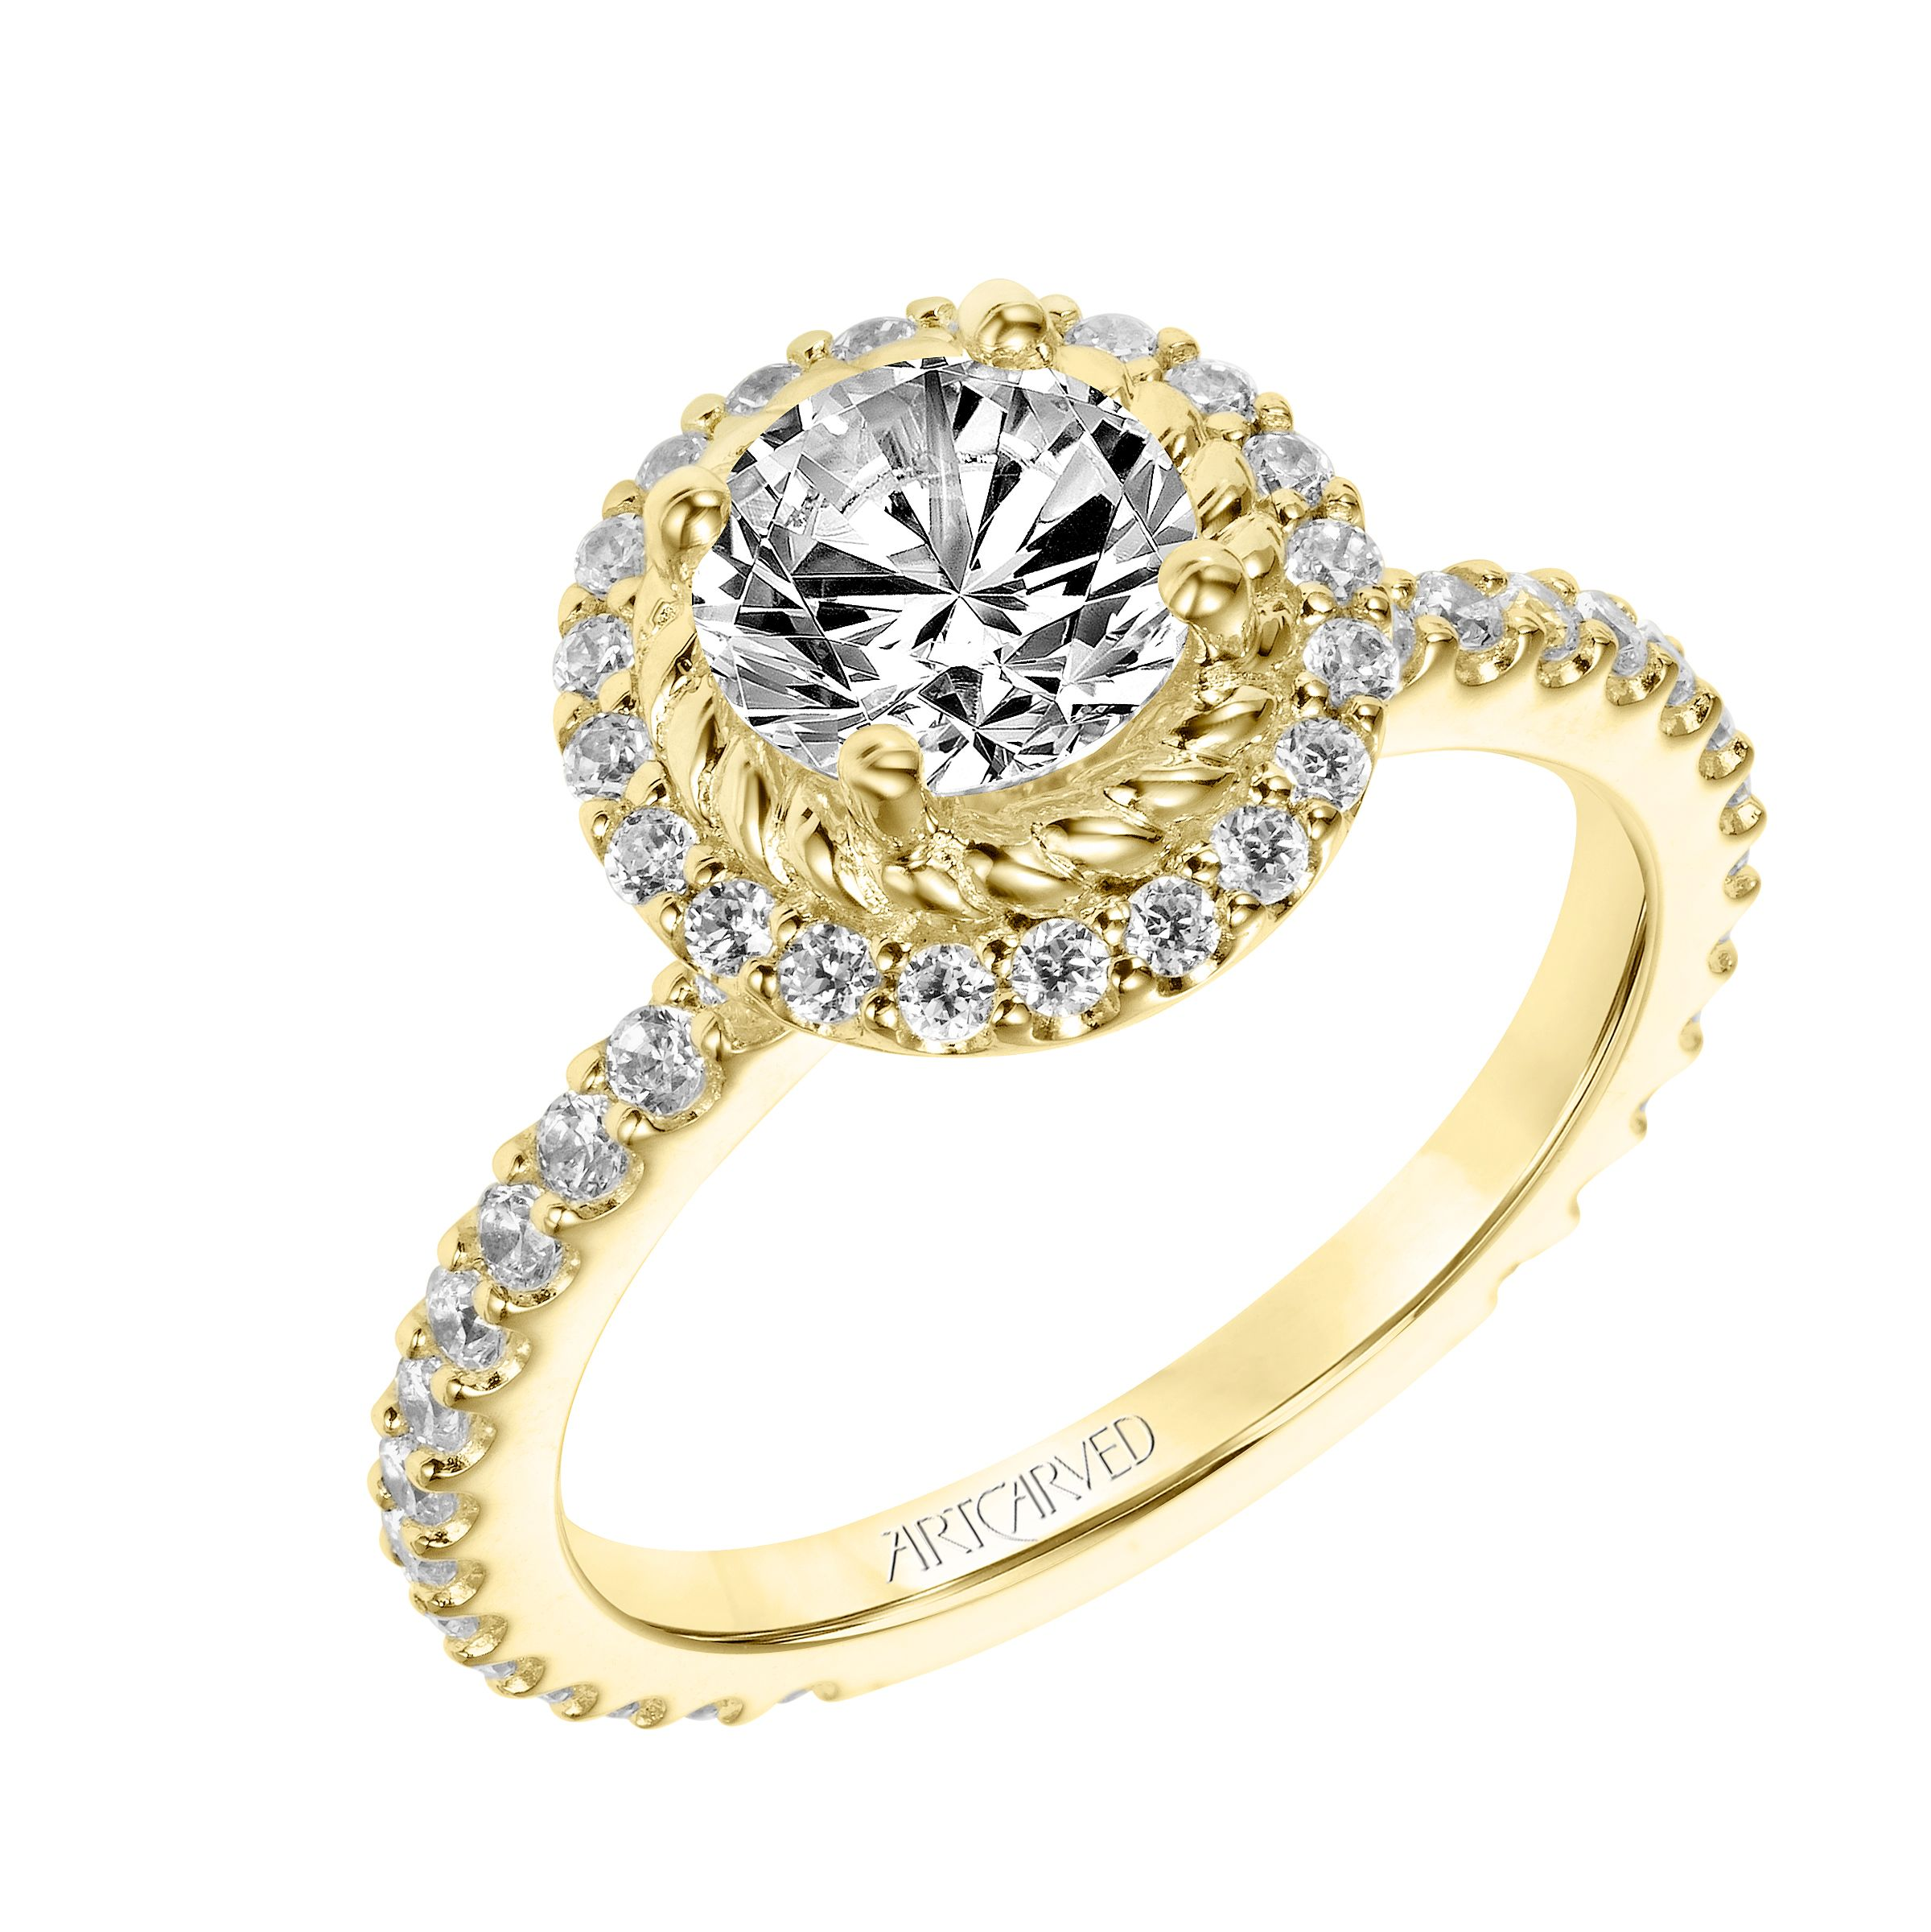 New for our Spring collection! Cara: Contemporary Diamond & Rope Halo Engagement Ring with Diamond Shank and Diamond Details in Gallery #artcarvedbridal #spring #yellowgold #engagementring